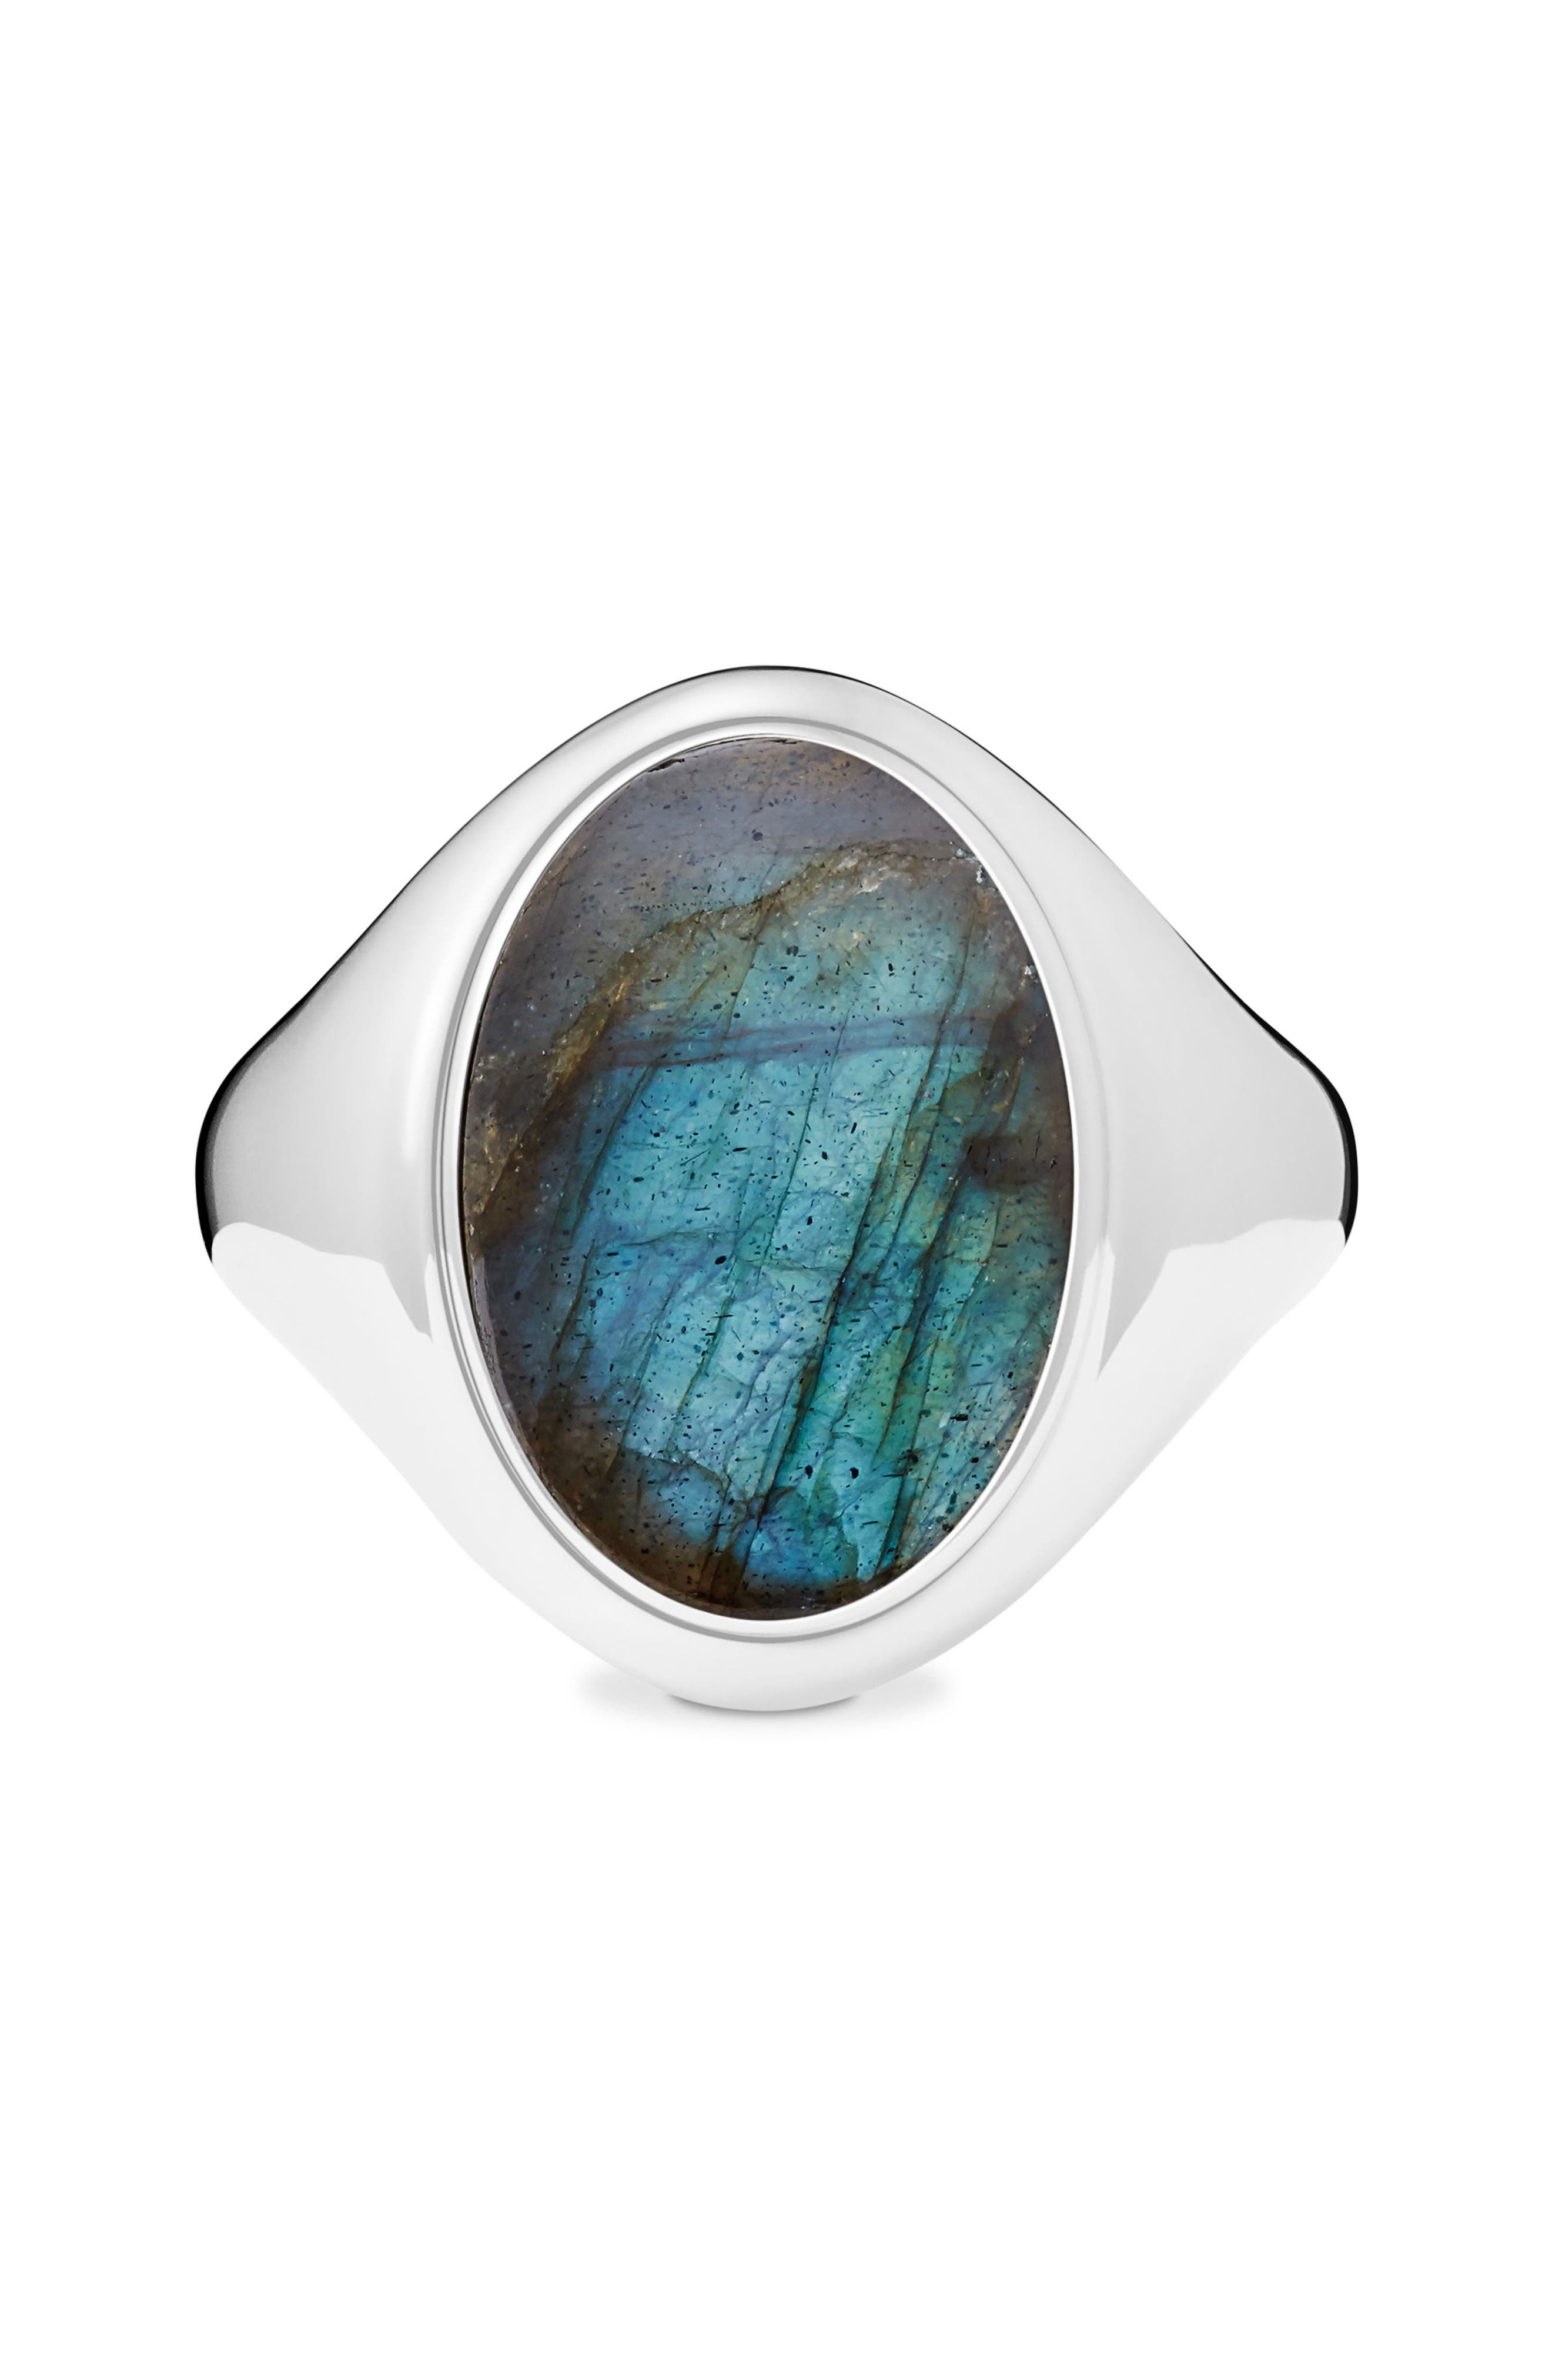 Shinola Statement Labradorite Signet Ring